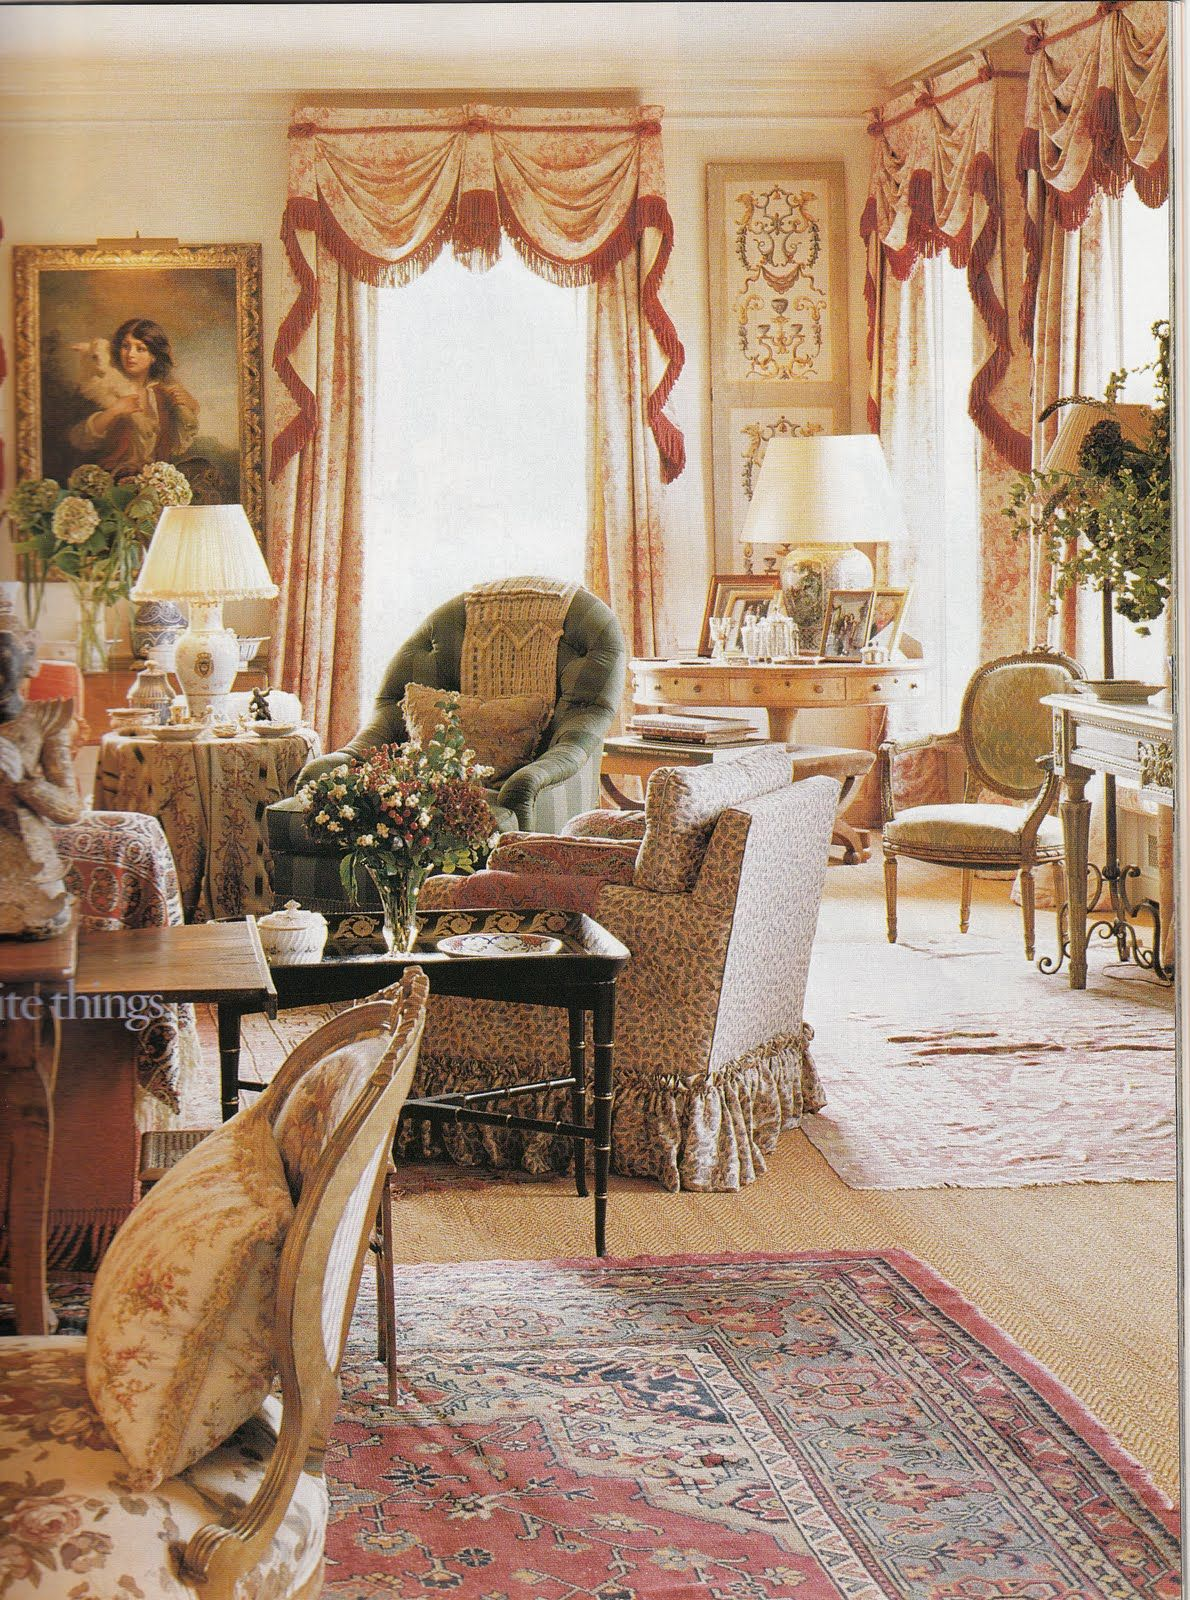 hydrangea hill cottage english country decorating english country style london style also. Black Bedroom Furniture Sets. Home Design Ideas